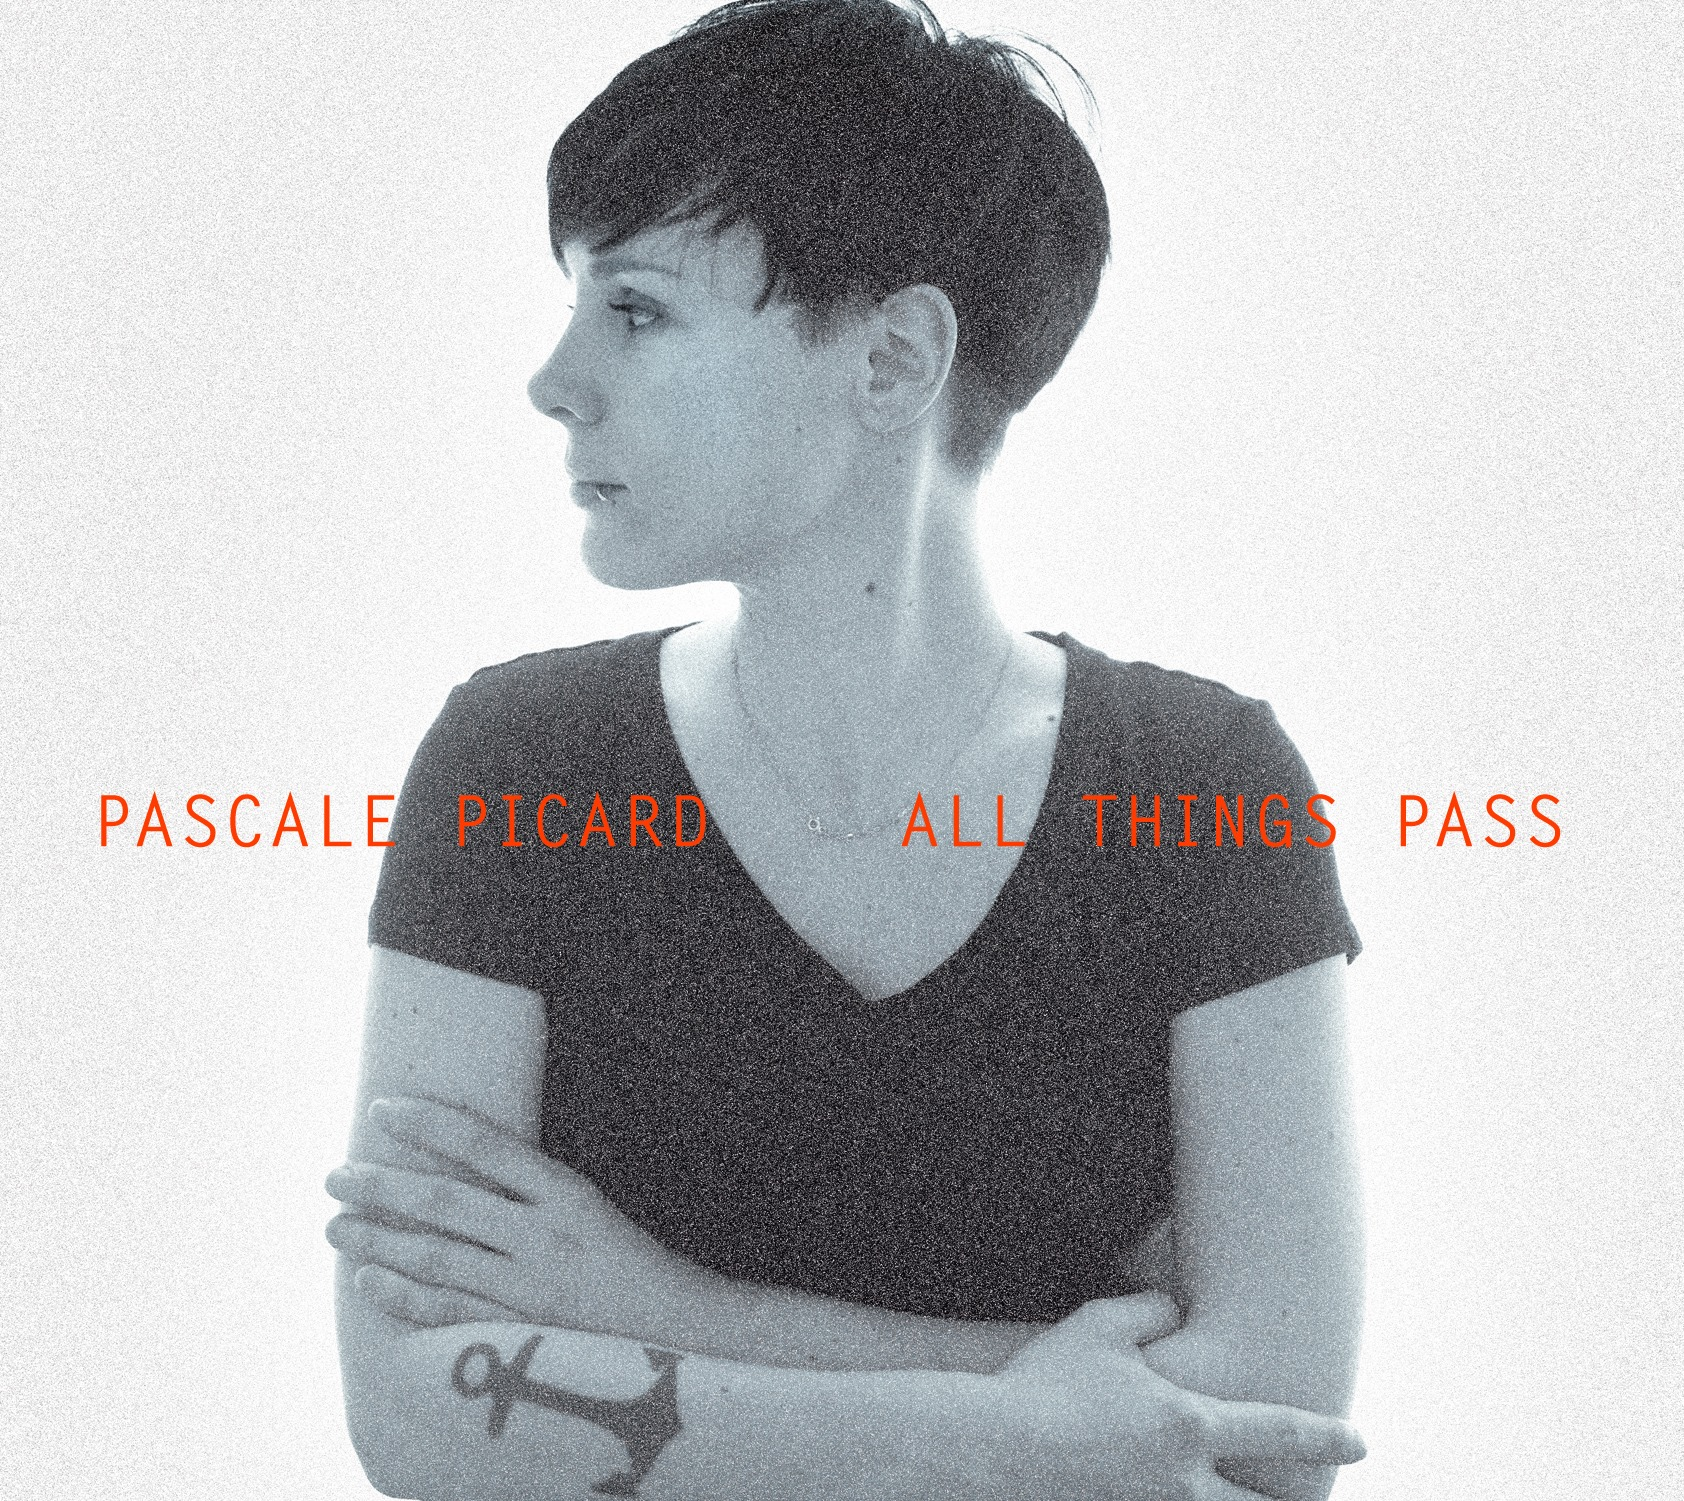 Pascale picard nouvel album All Things Pass Simone Records Zamora Label concert france et paris